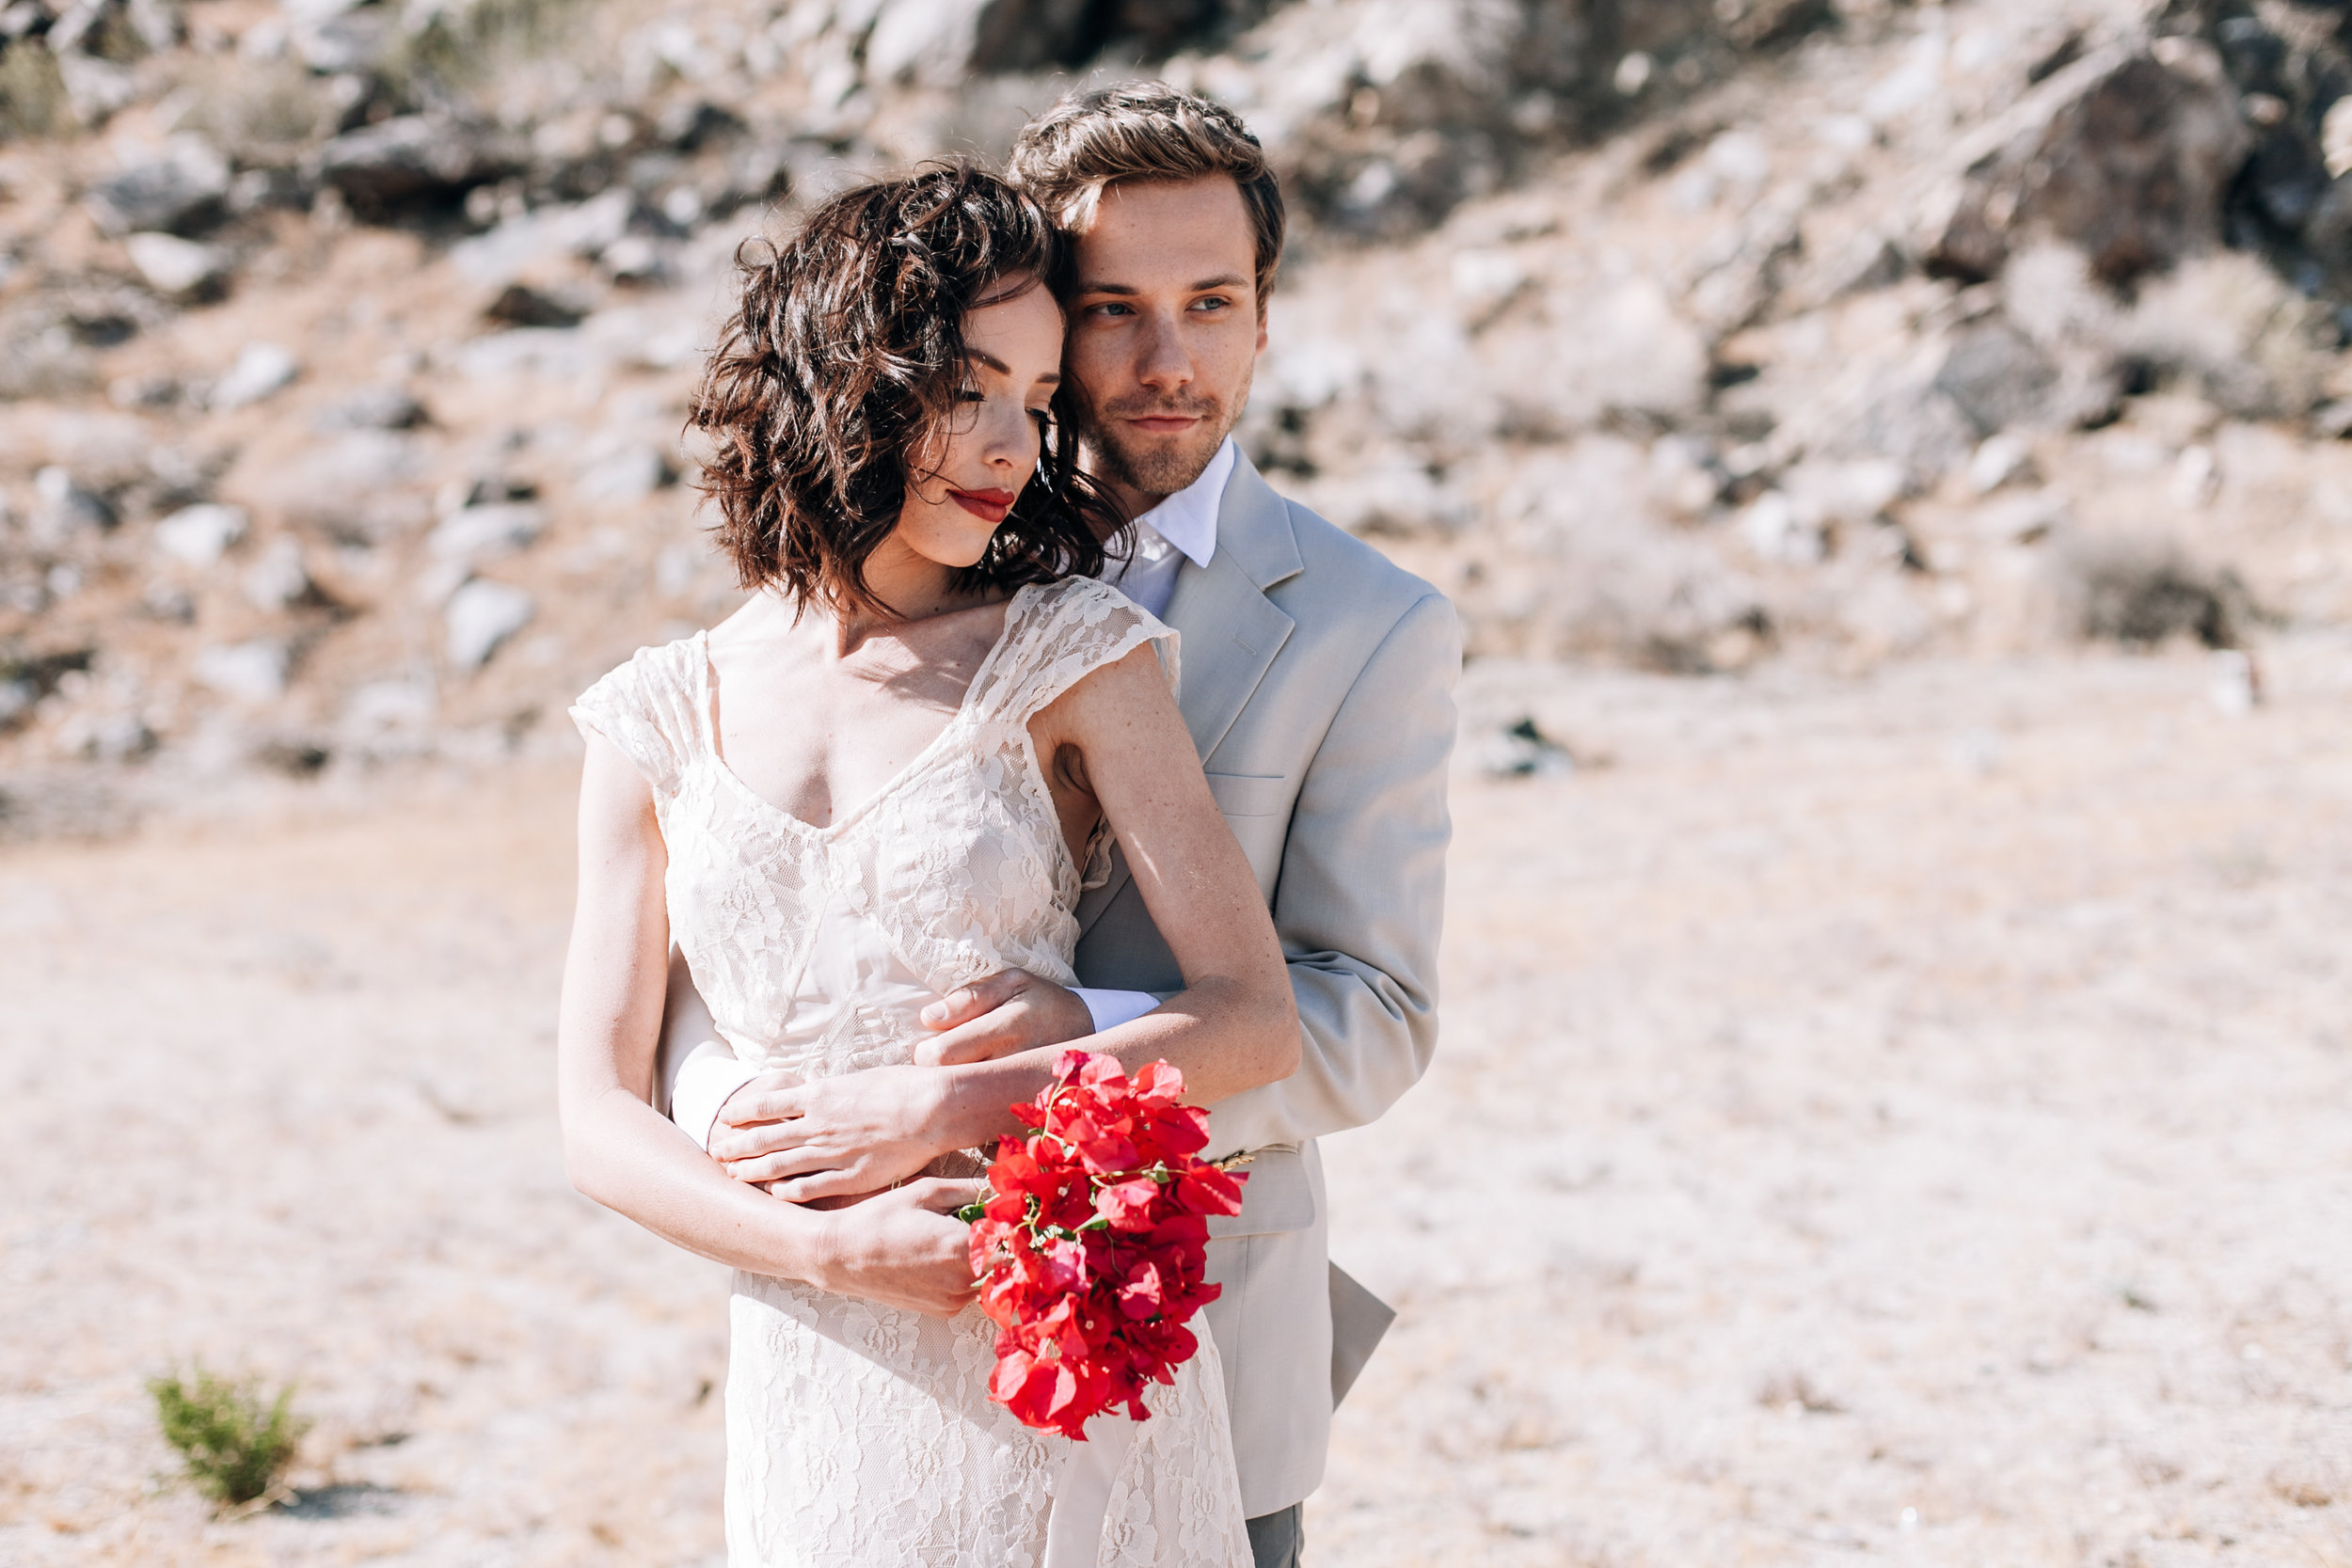 KaraNixonWeddings-PalmSprings-Elopement-3.jpg